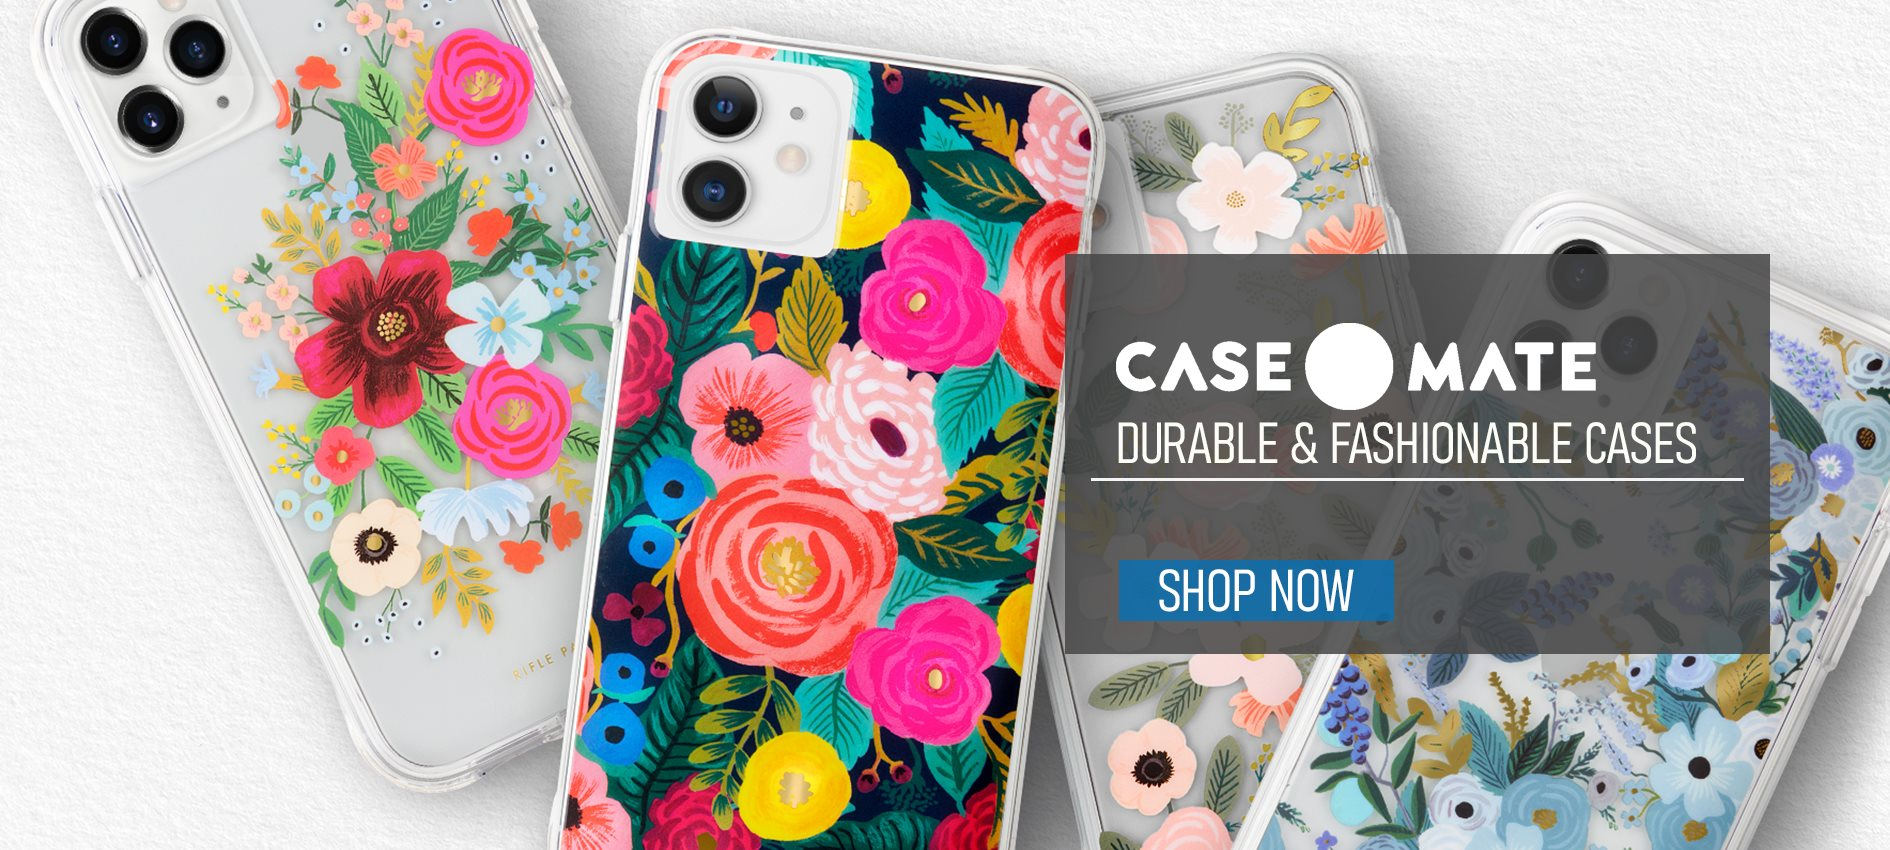 Case-Mate banner image of Rifle Paper cases